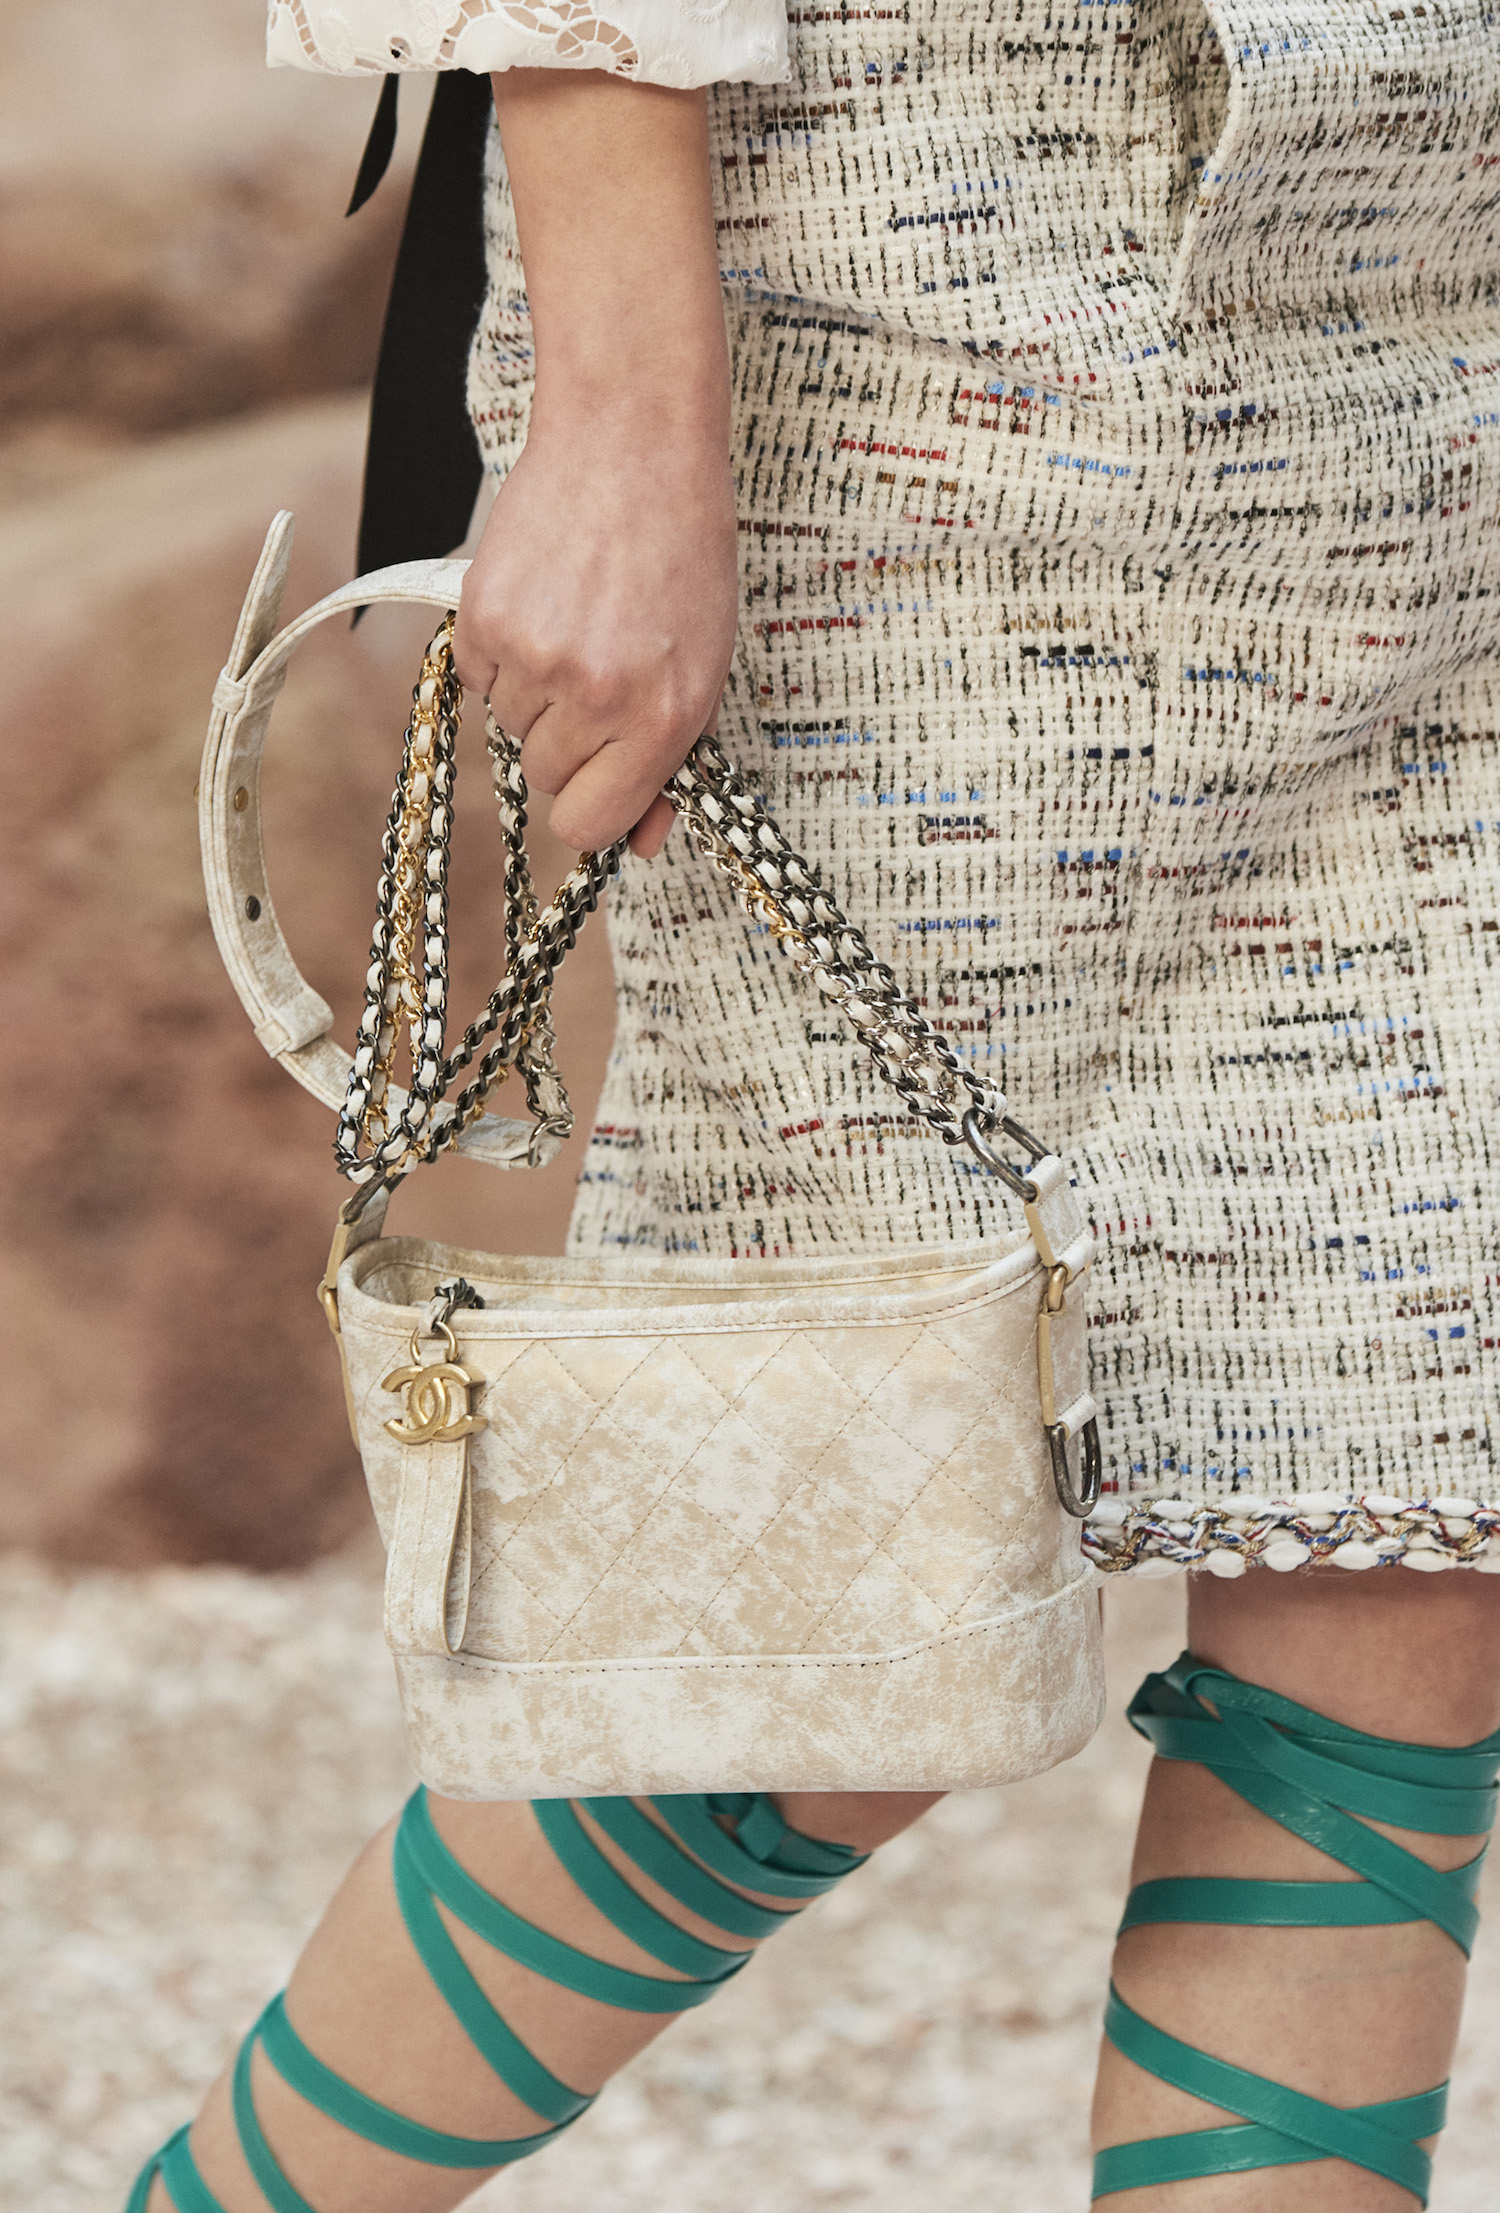 Chanel Cruise Collection, l'eleganza incontra l'antica Grecia.